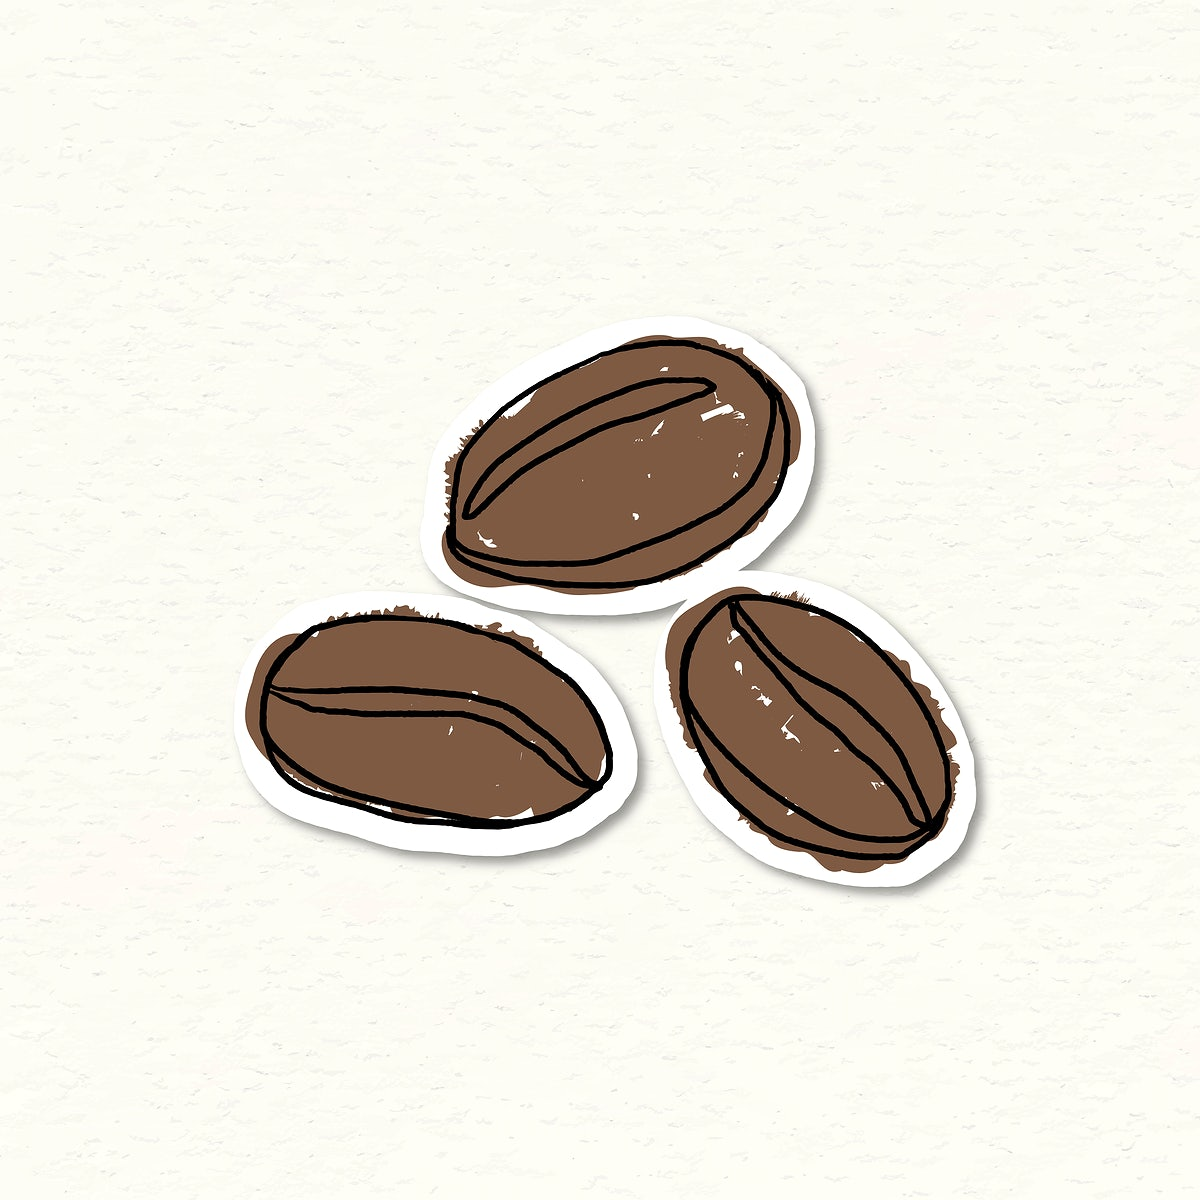 coffee beans doodle journal sticker vector royalty free vector 2375840 https www rawpixel com image 2375840